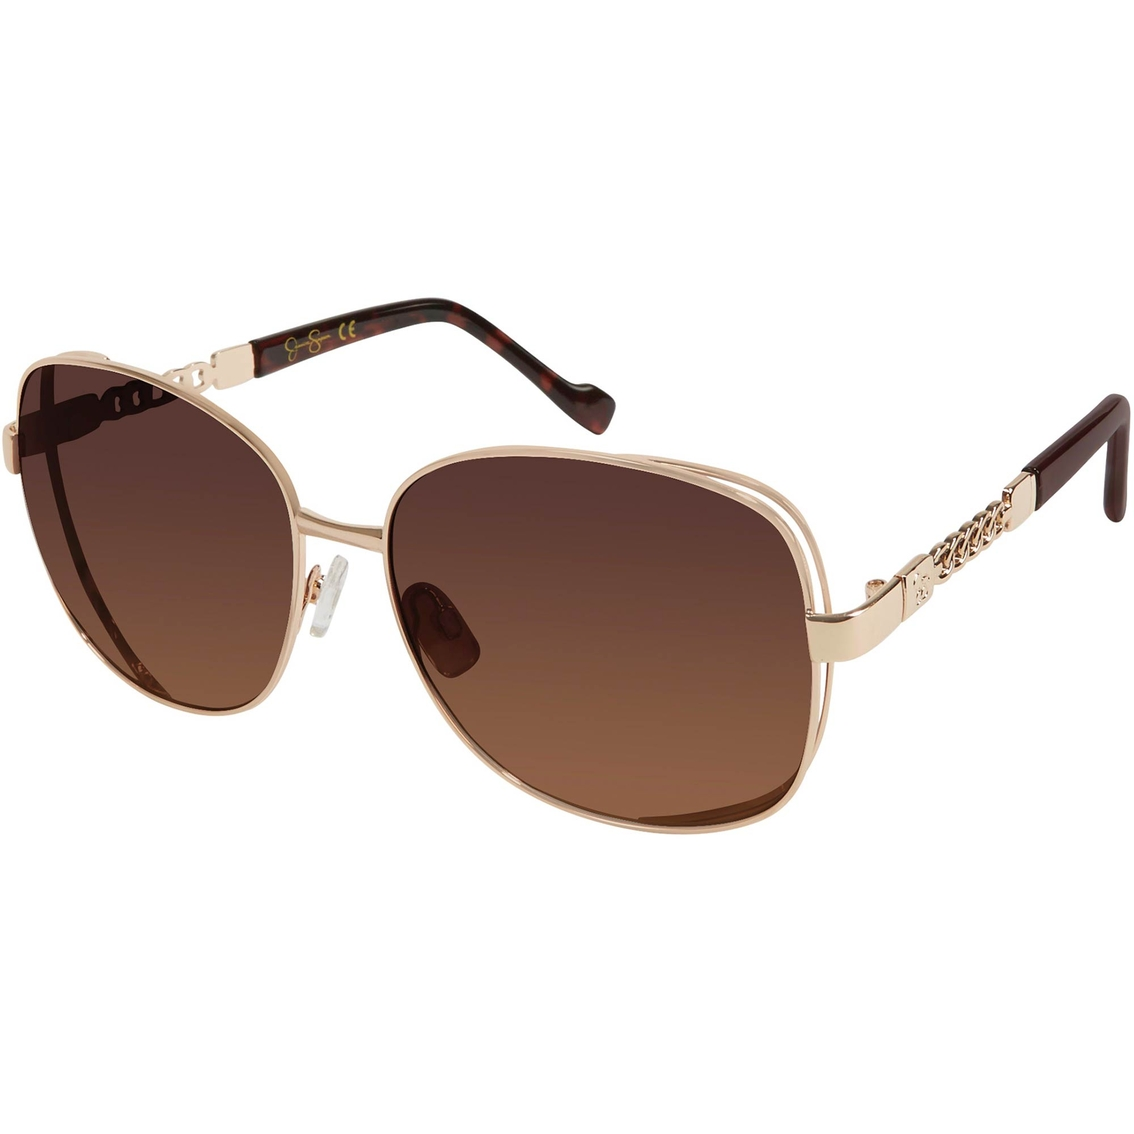 26cfb02652 Jessica Simpson Glam Rectangle Satellite with Chain Temple Sunglasses